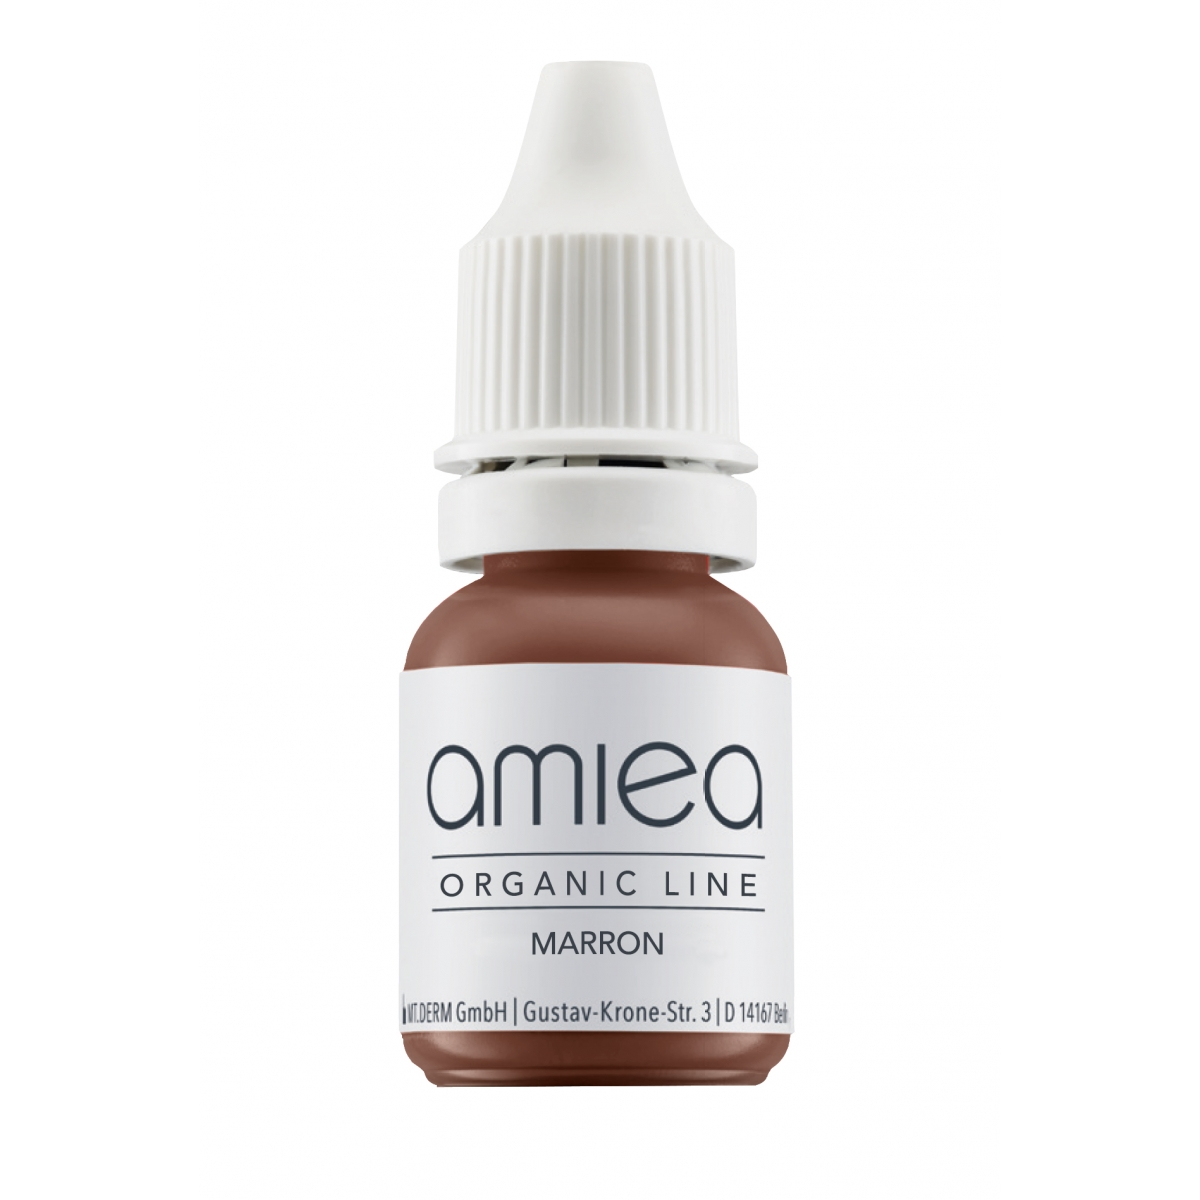 ORGANIC LINE (5ml)  - PIGMENT MARRON ORGANICLINE AMIEA (5 ml)